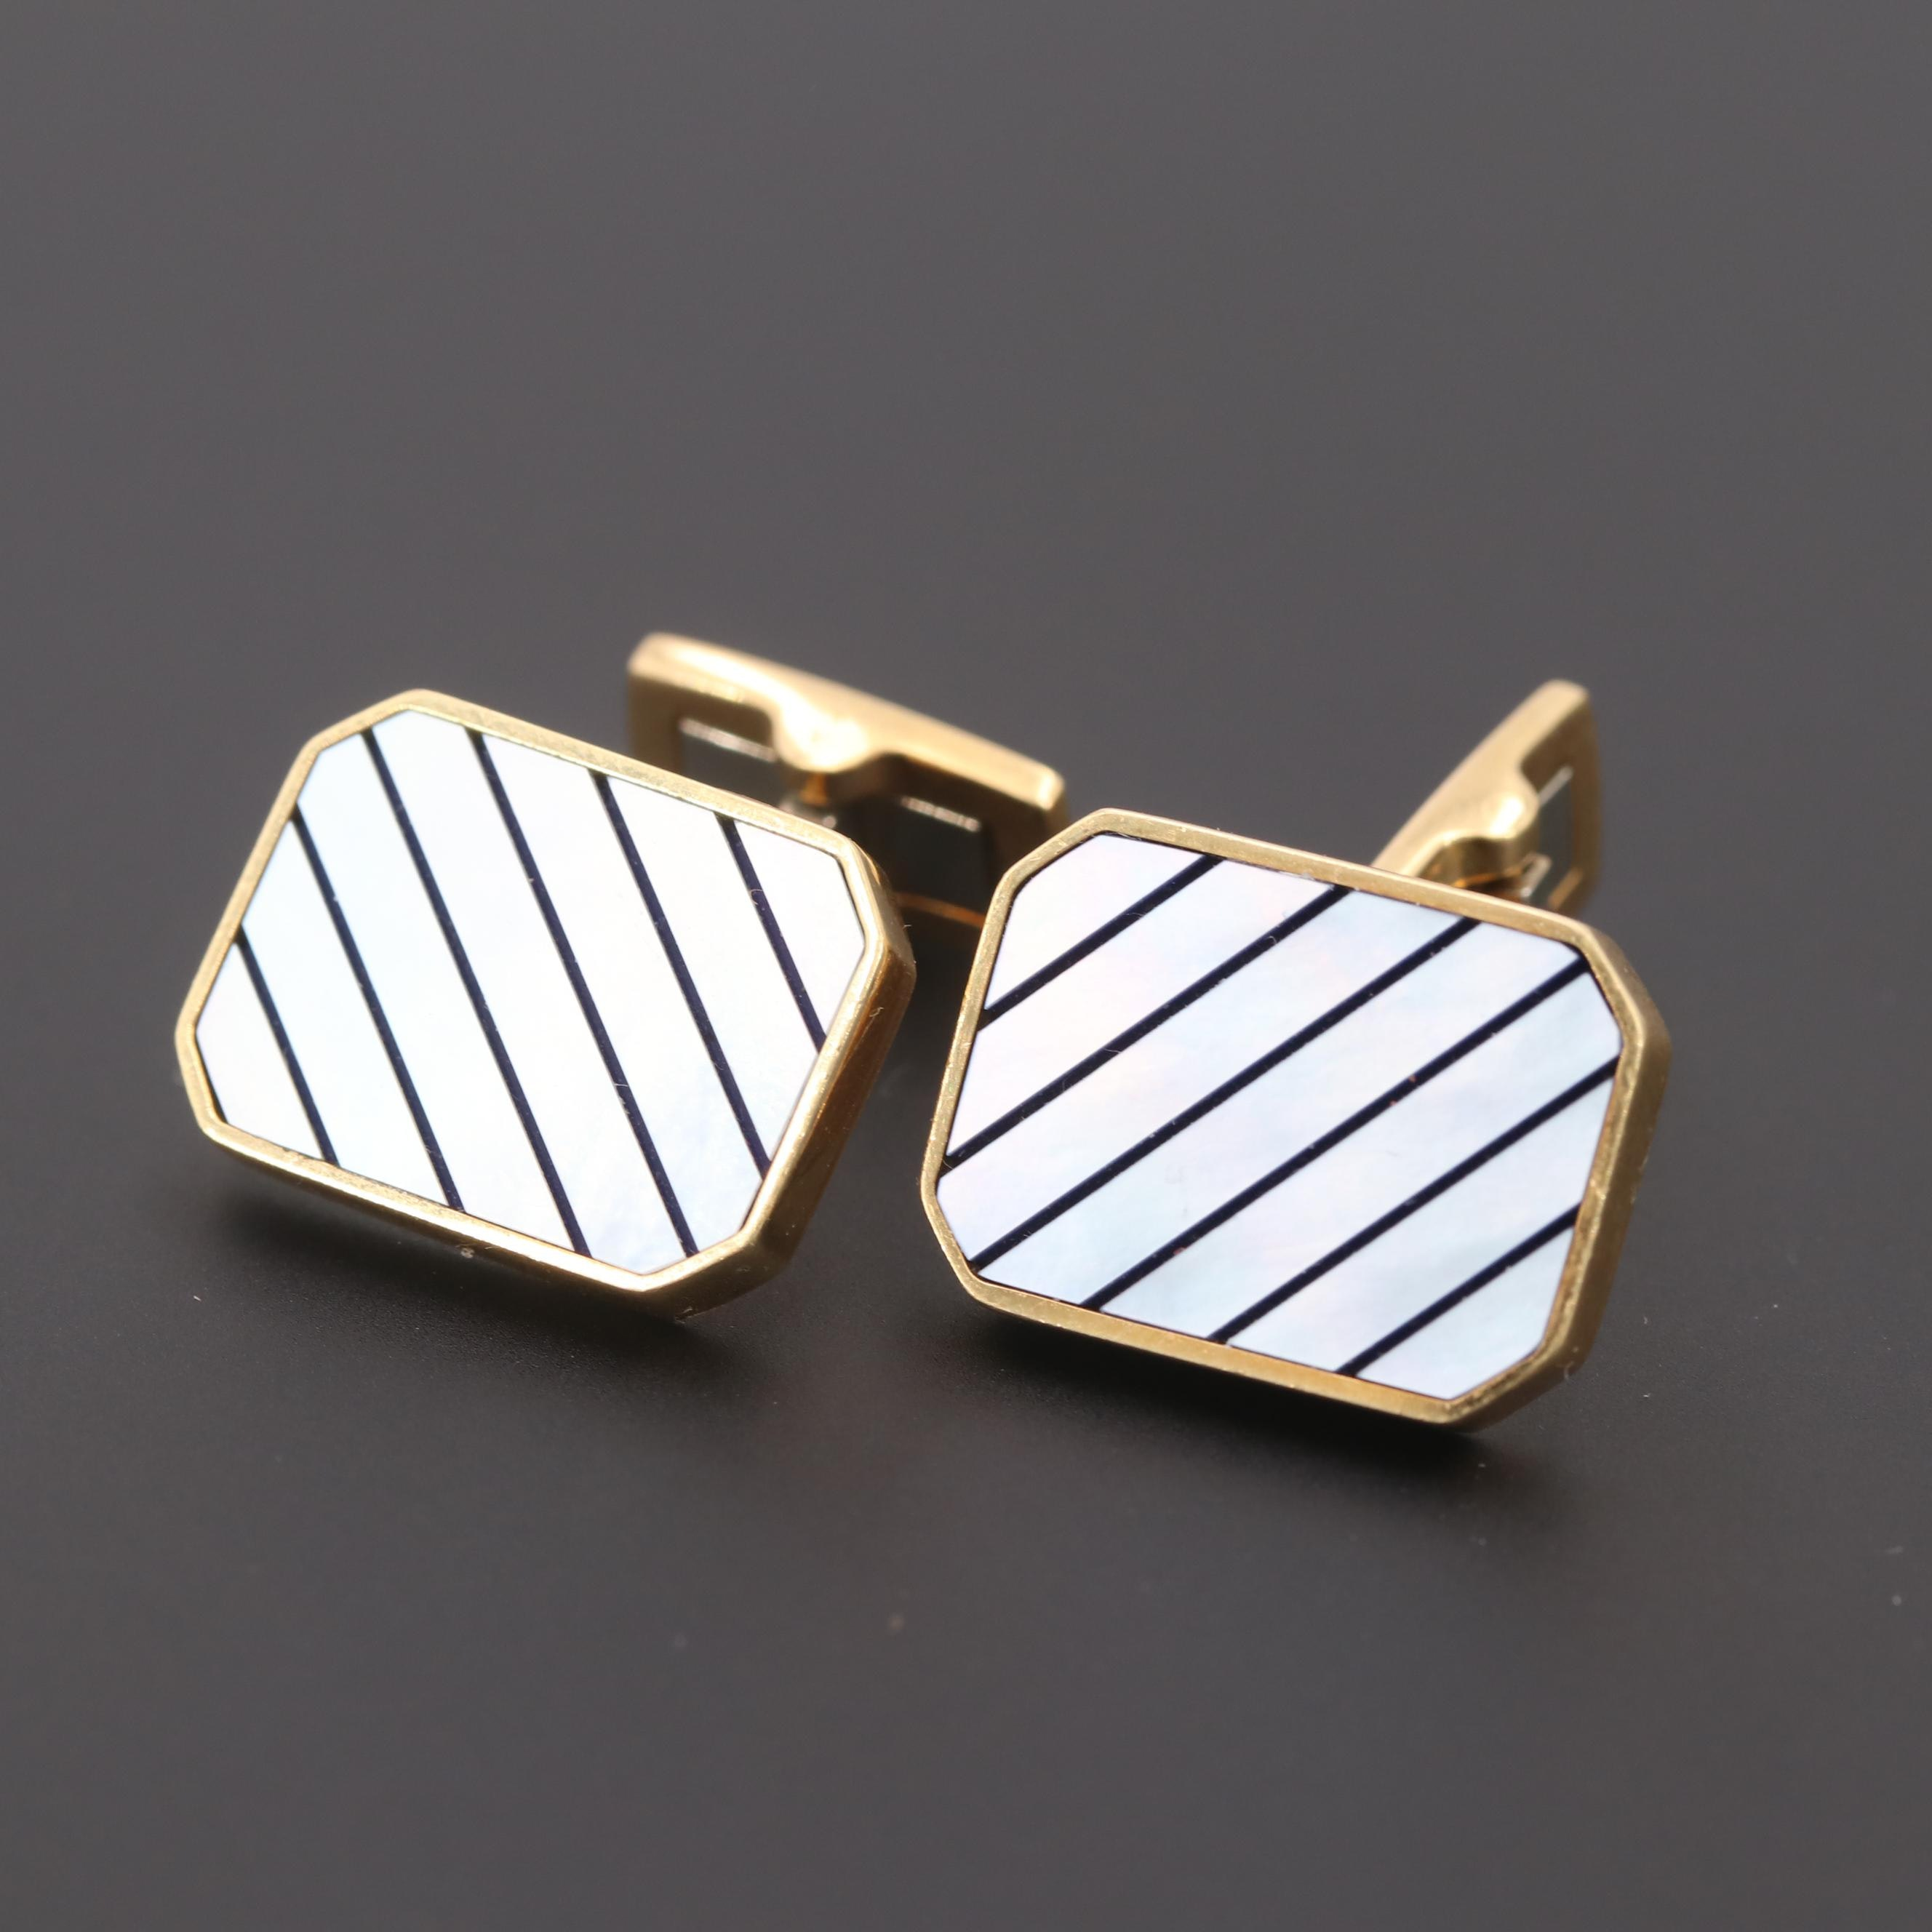 Vintage 18K Yellow Gold Mother of Pearl Cufflinks